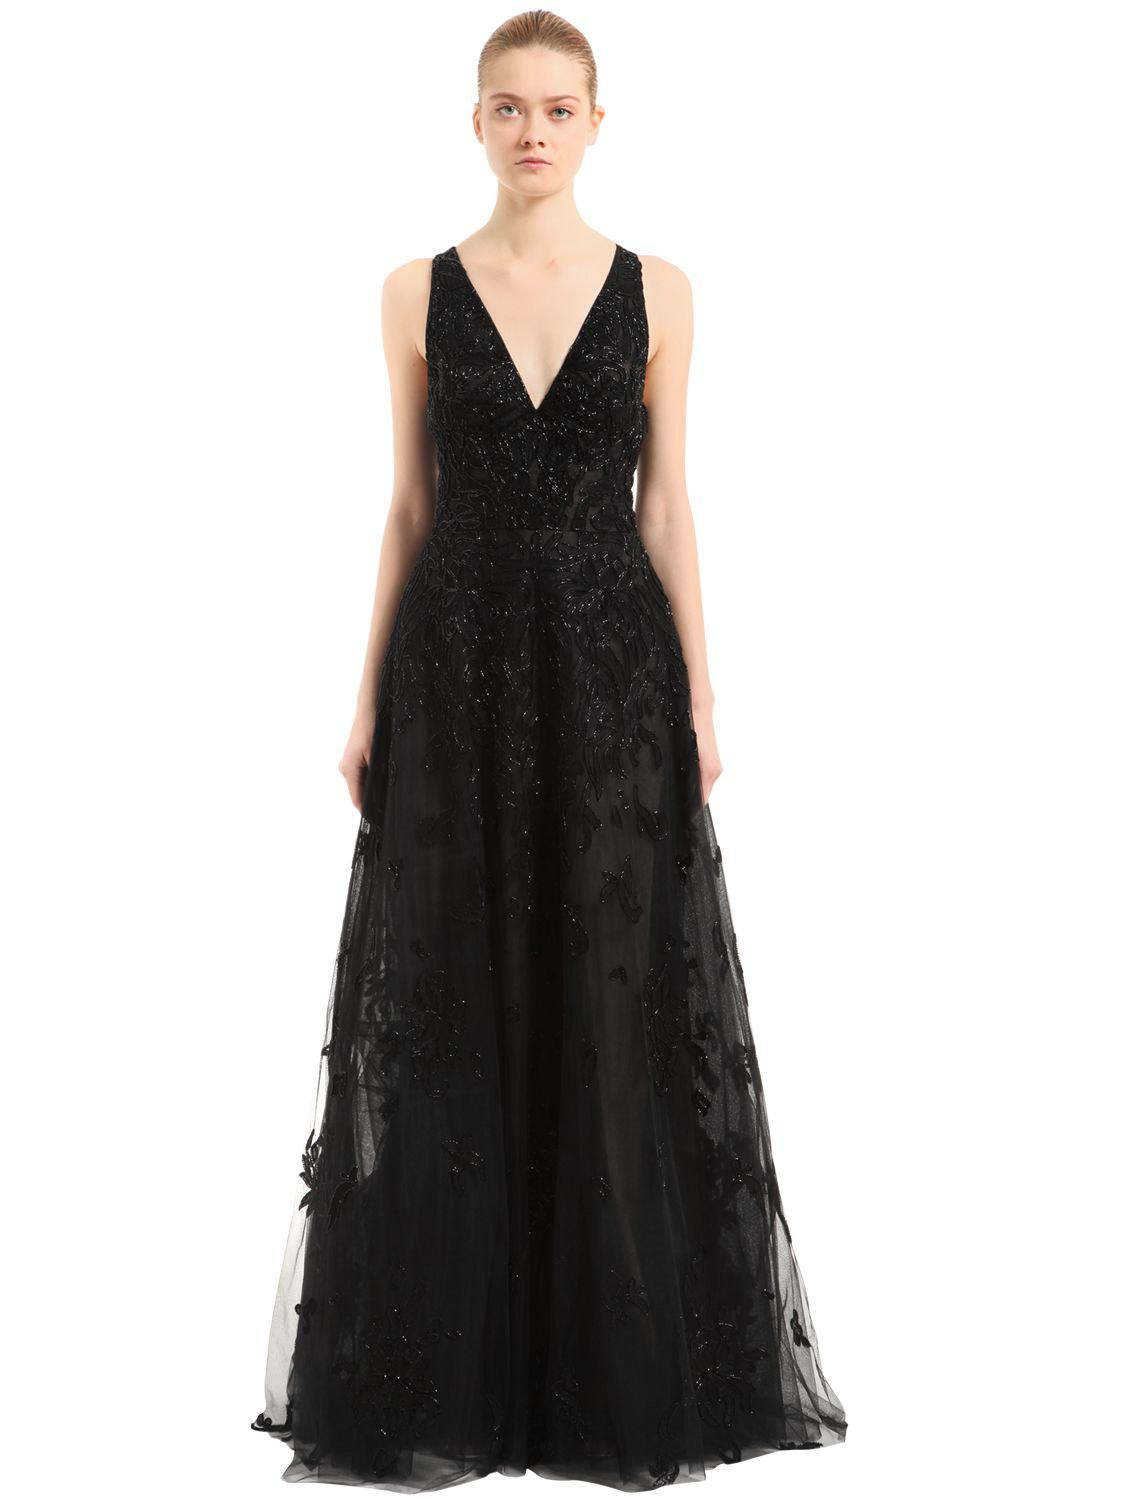 Lyst - Zuhair Murad Beaded Tulle Floral Gown W/ Cape in Black - Save ...